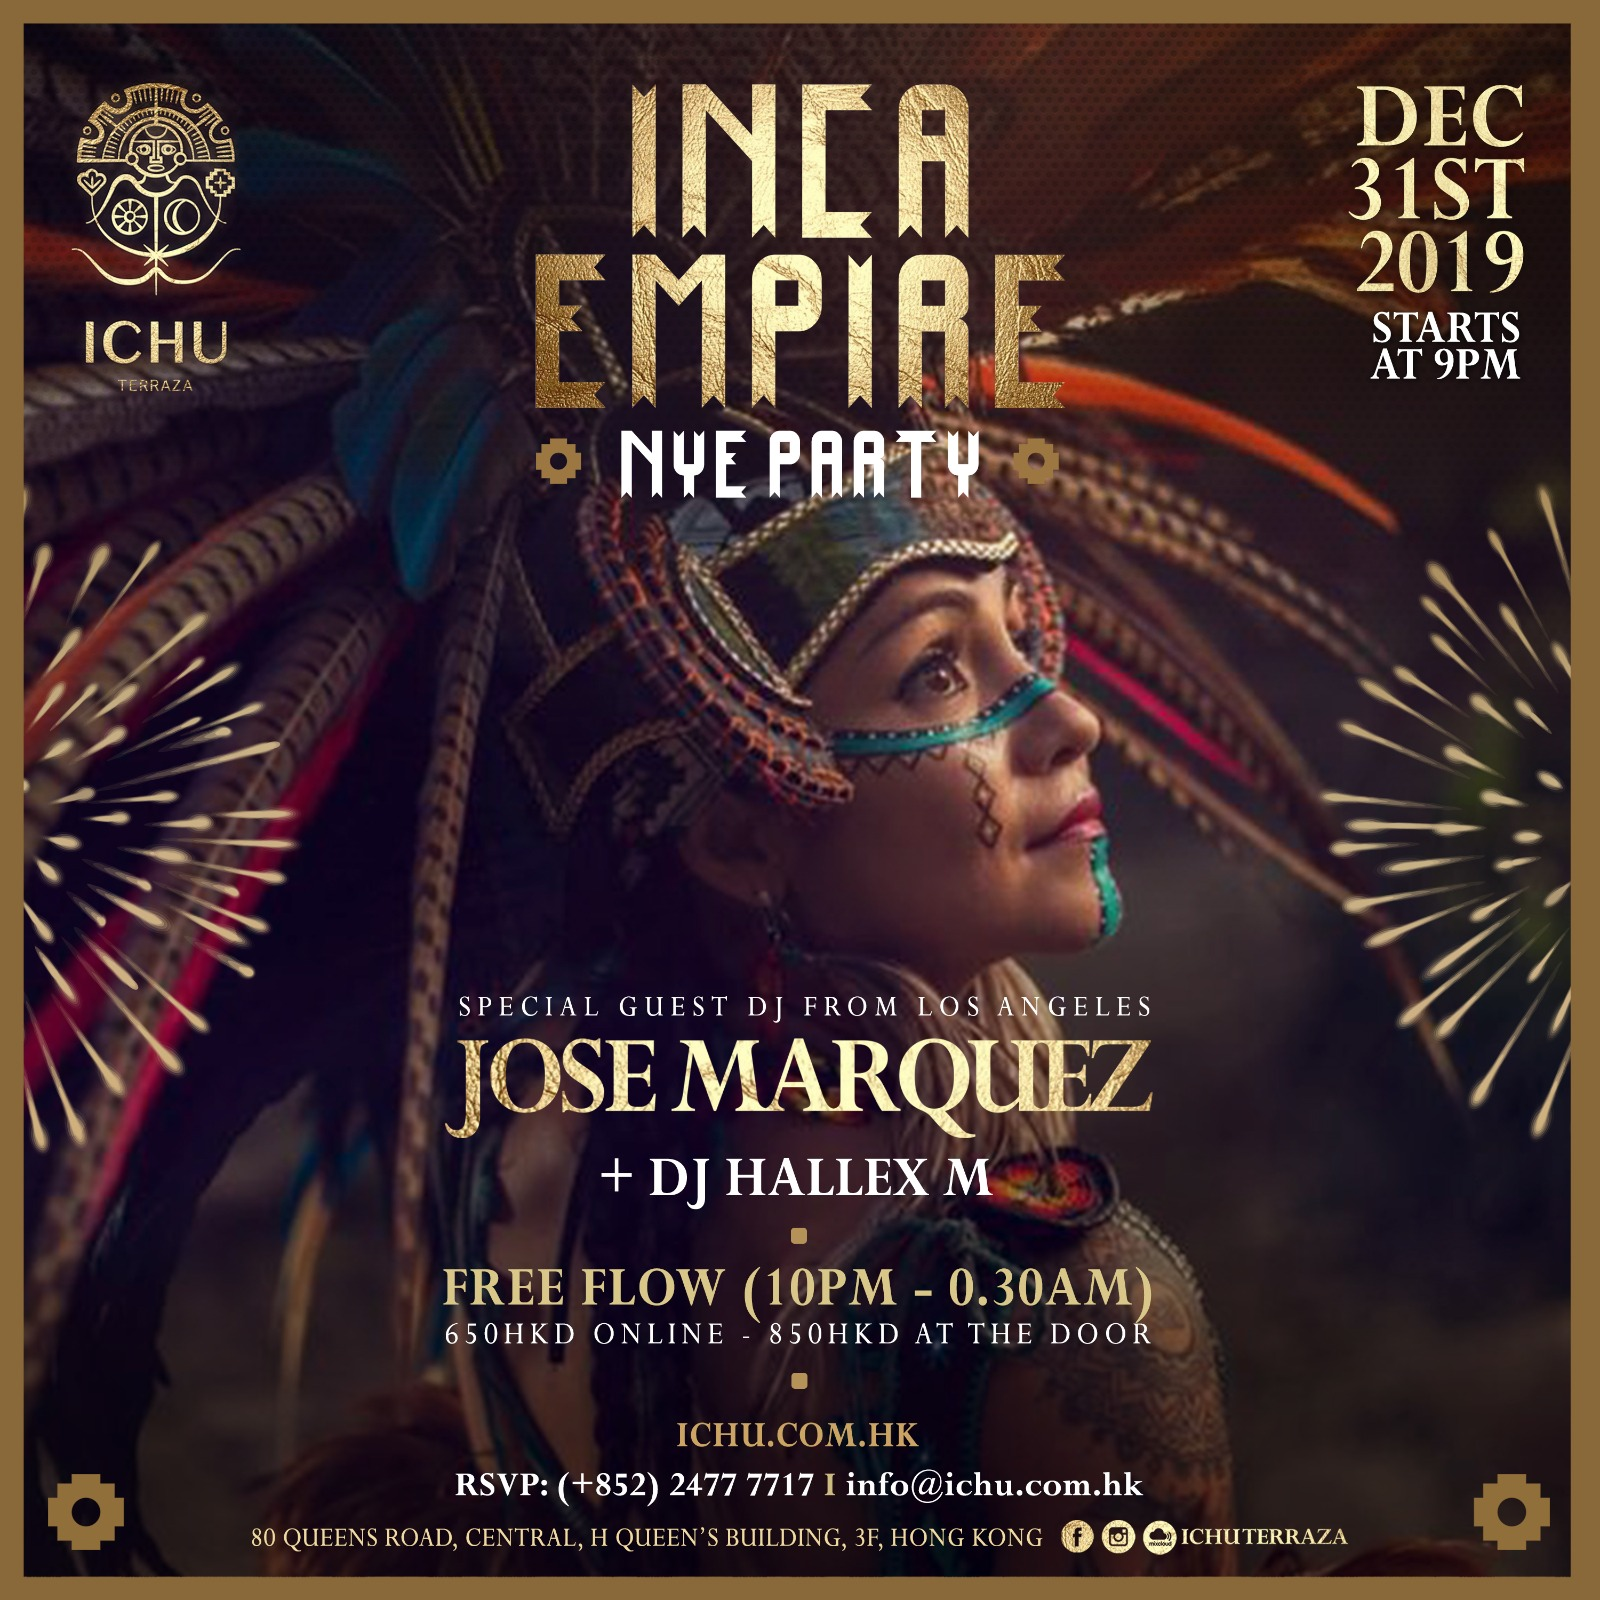 ICHU Restaurant & Bar | Events | Inca Empire NYE Party